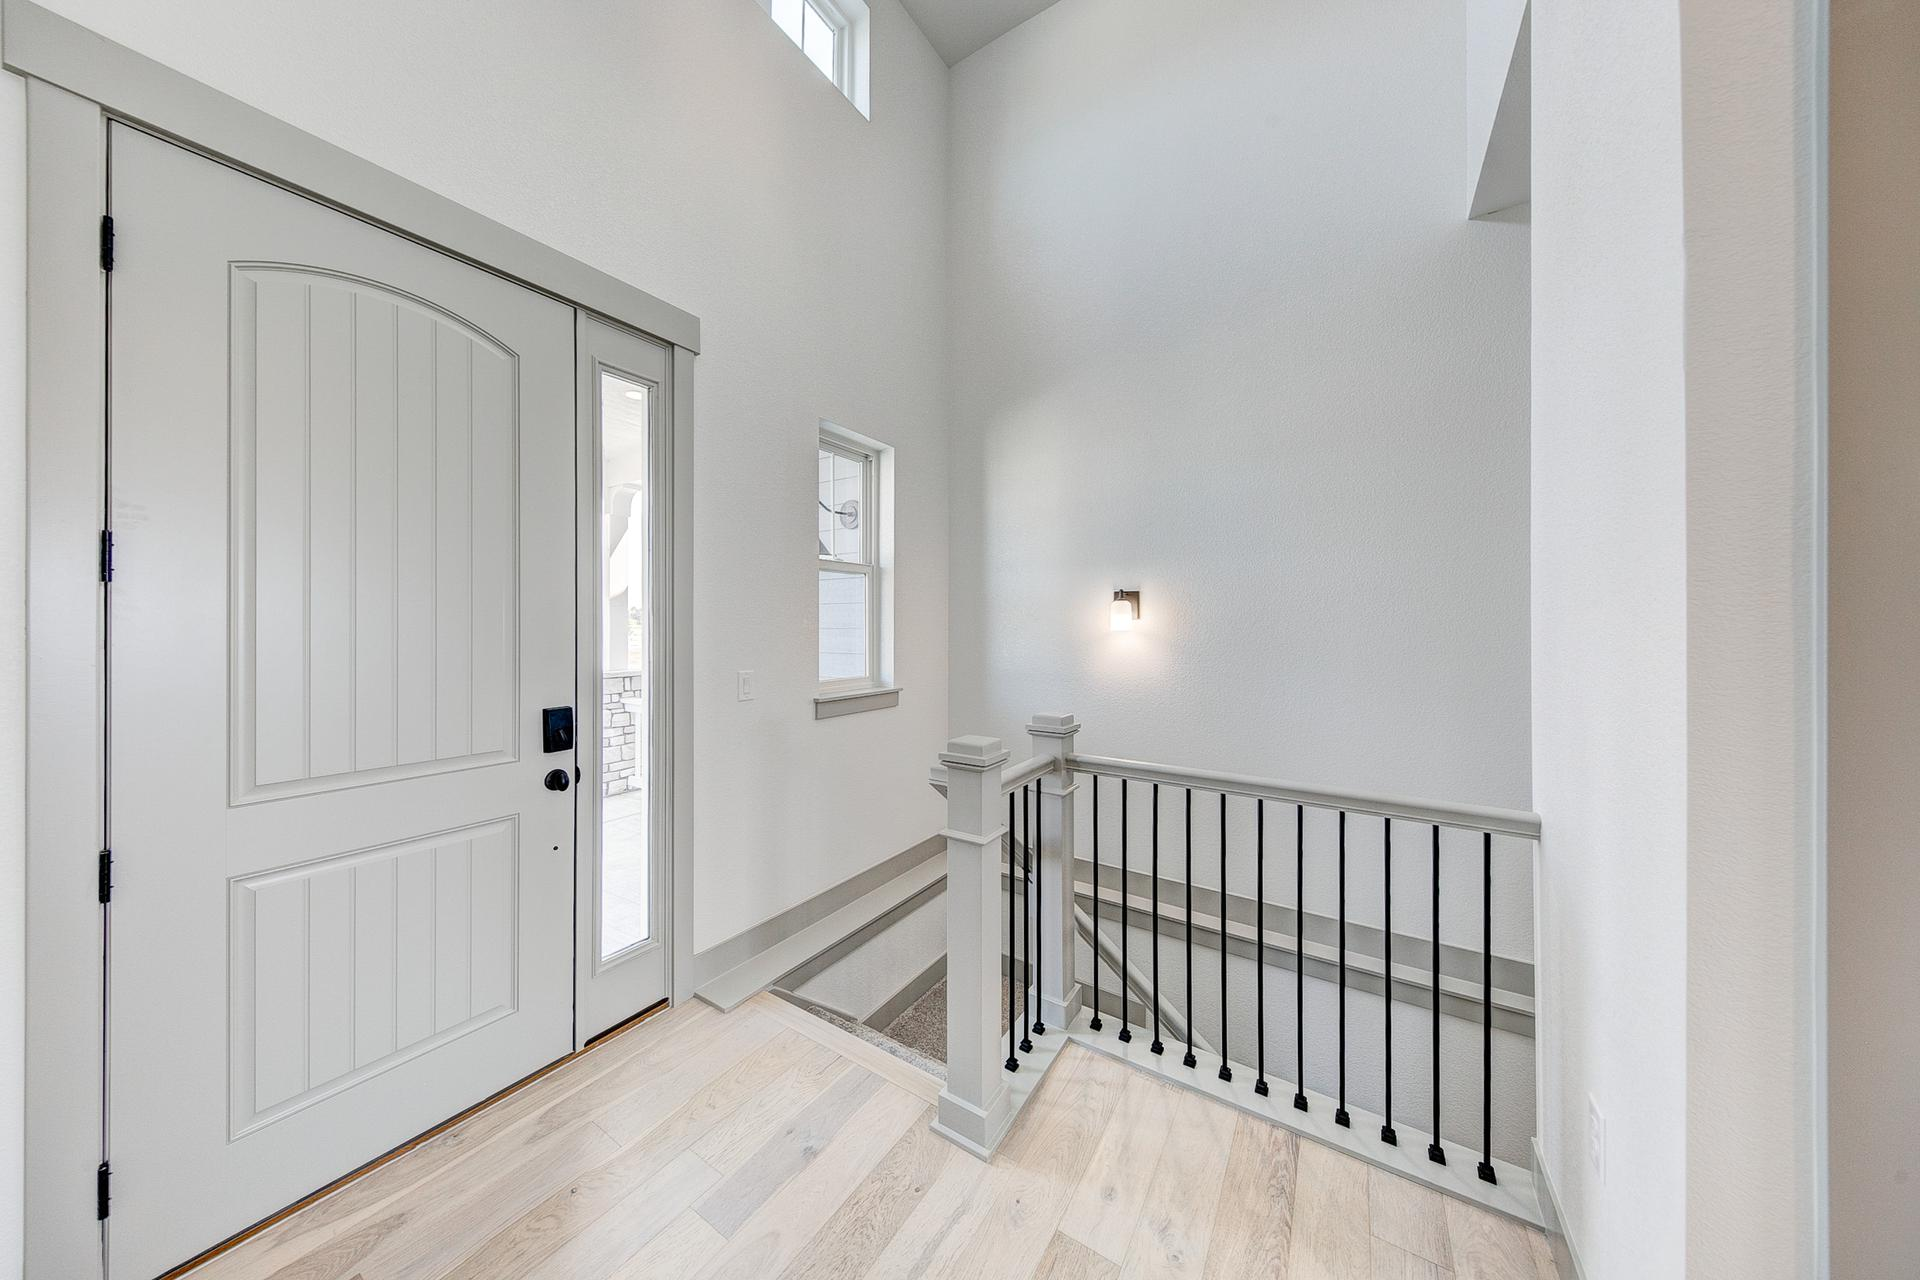 Foyer - Not Actual Home - Finishes Will Vary